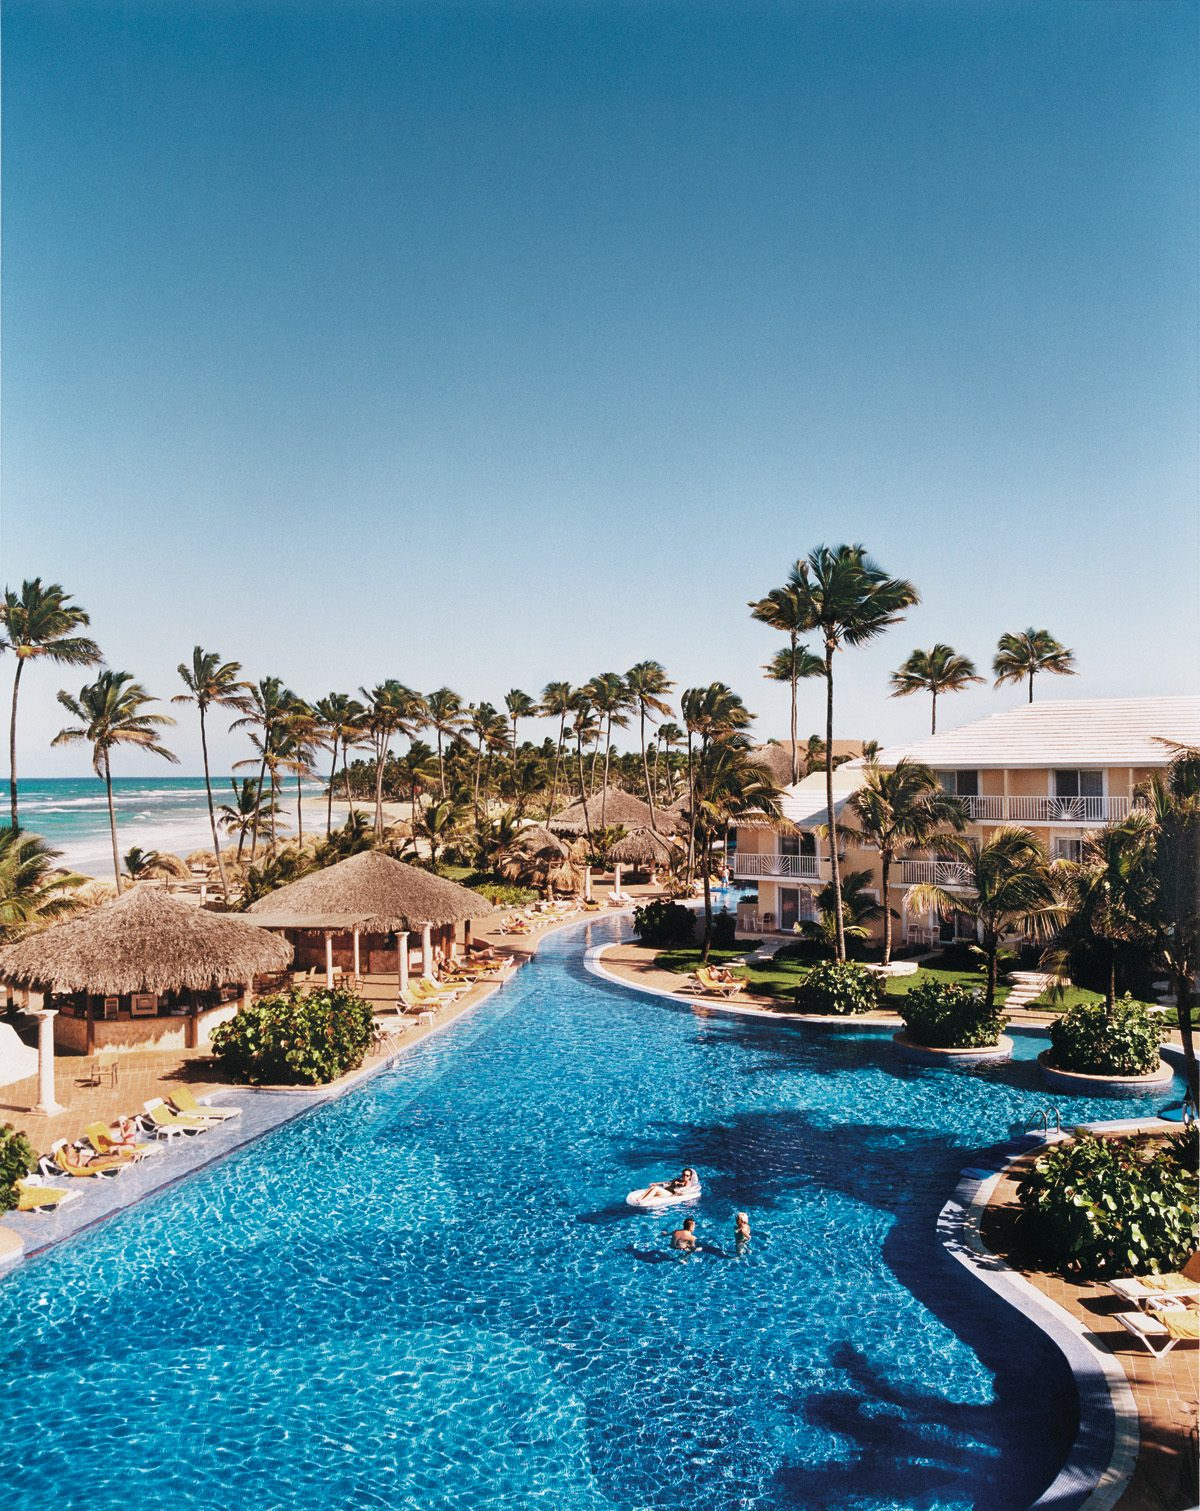 7. Excellence Punta Cana, Dominican Republic